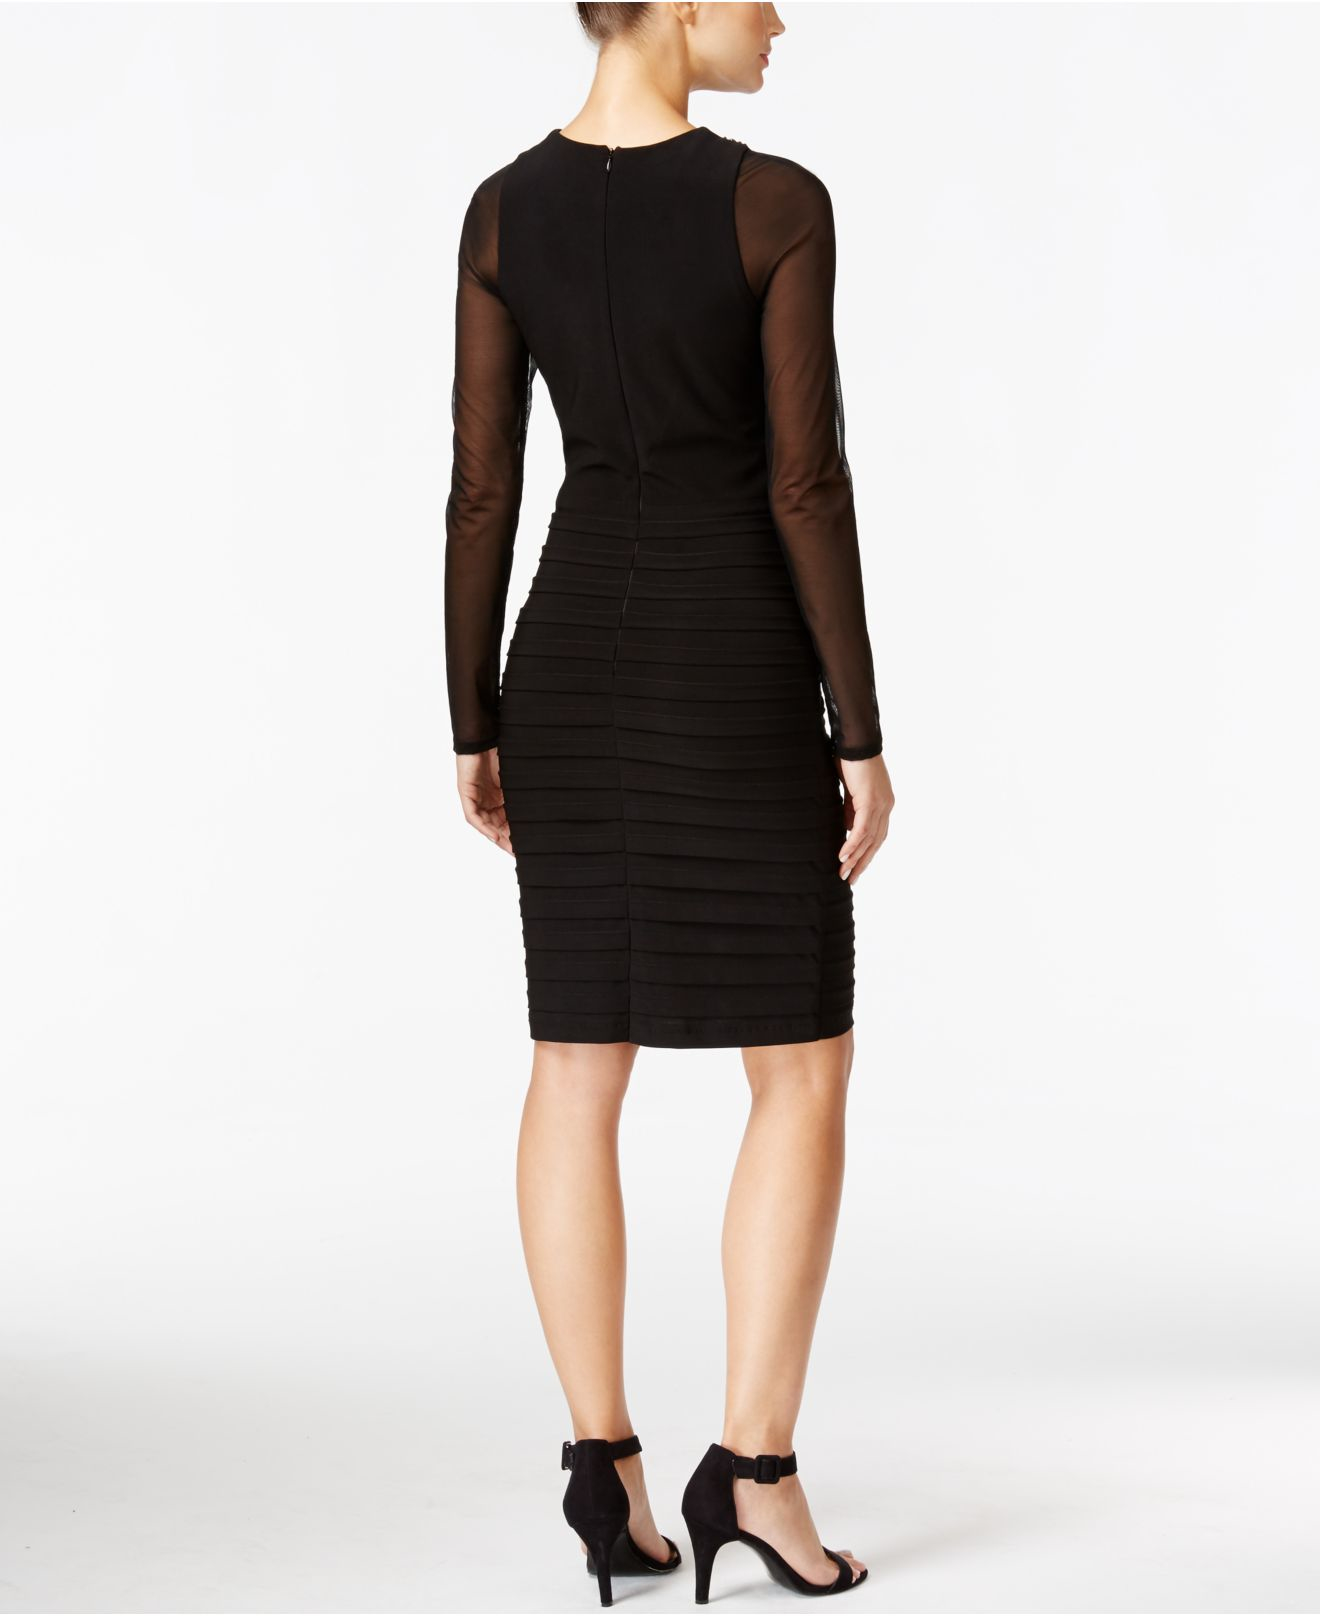 Xscape Petite Long-sleeve Beaded Illusion Sheath Dress in Black | Lyst